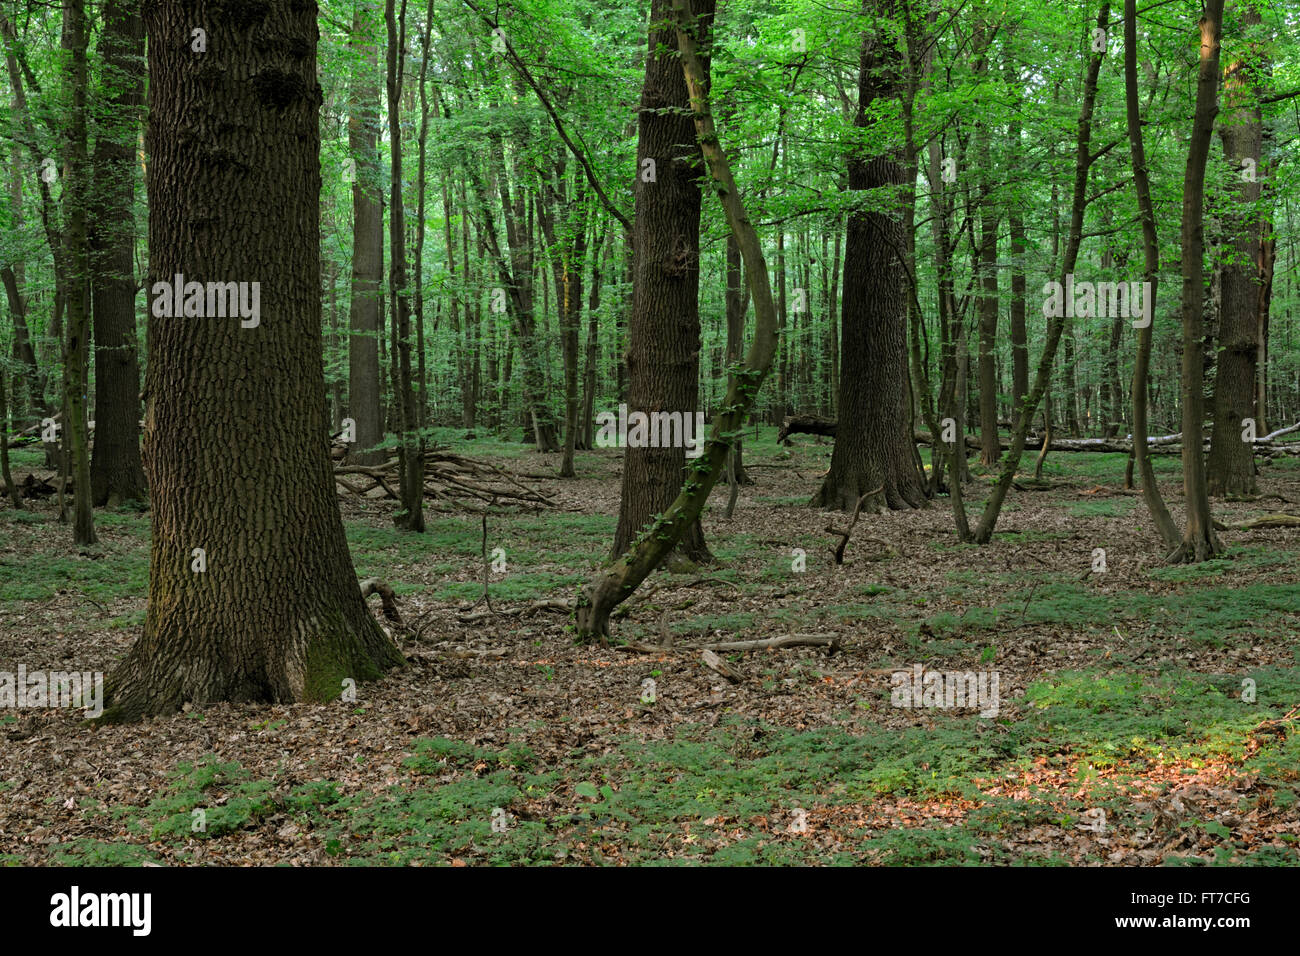 Natural forest / Natural wood reserve / Naturwaldzelle / Urspruenglicher Laubwald, protected area in spring. - Stock Image